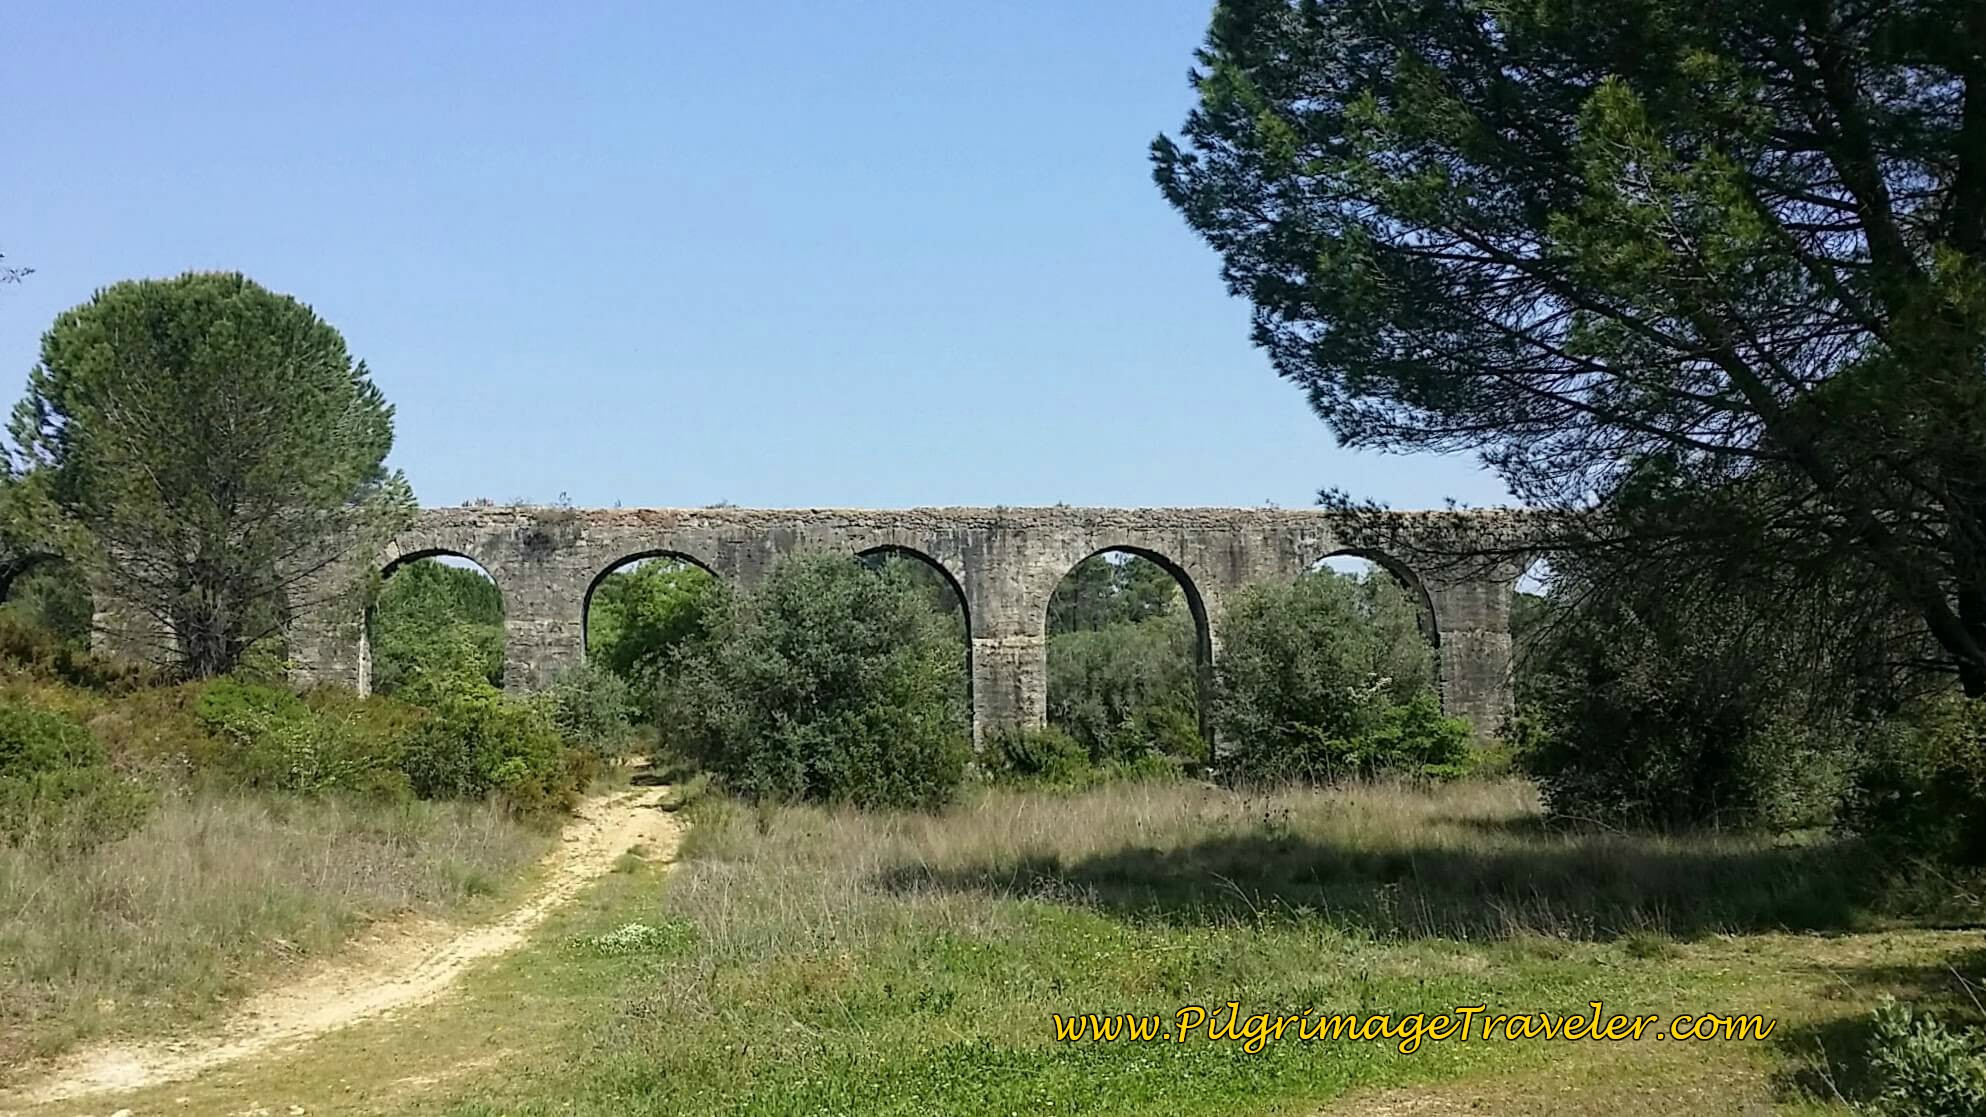 First Sight of the Aqueduct on the Nascente